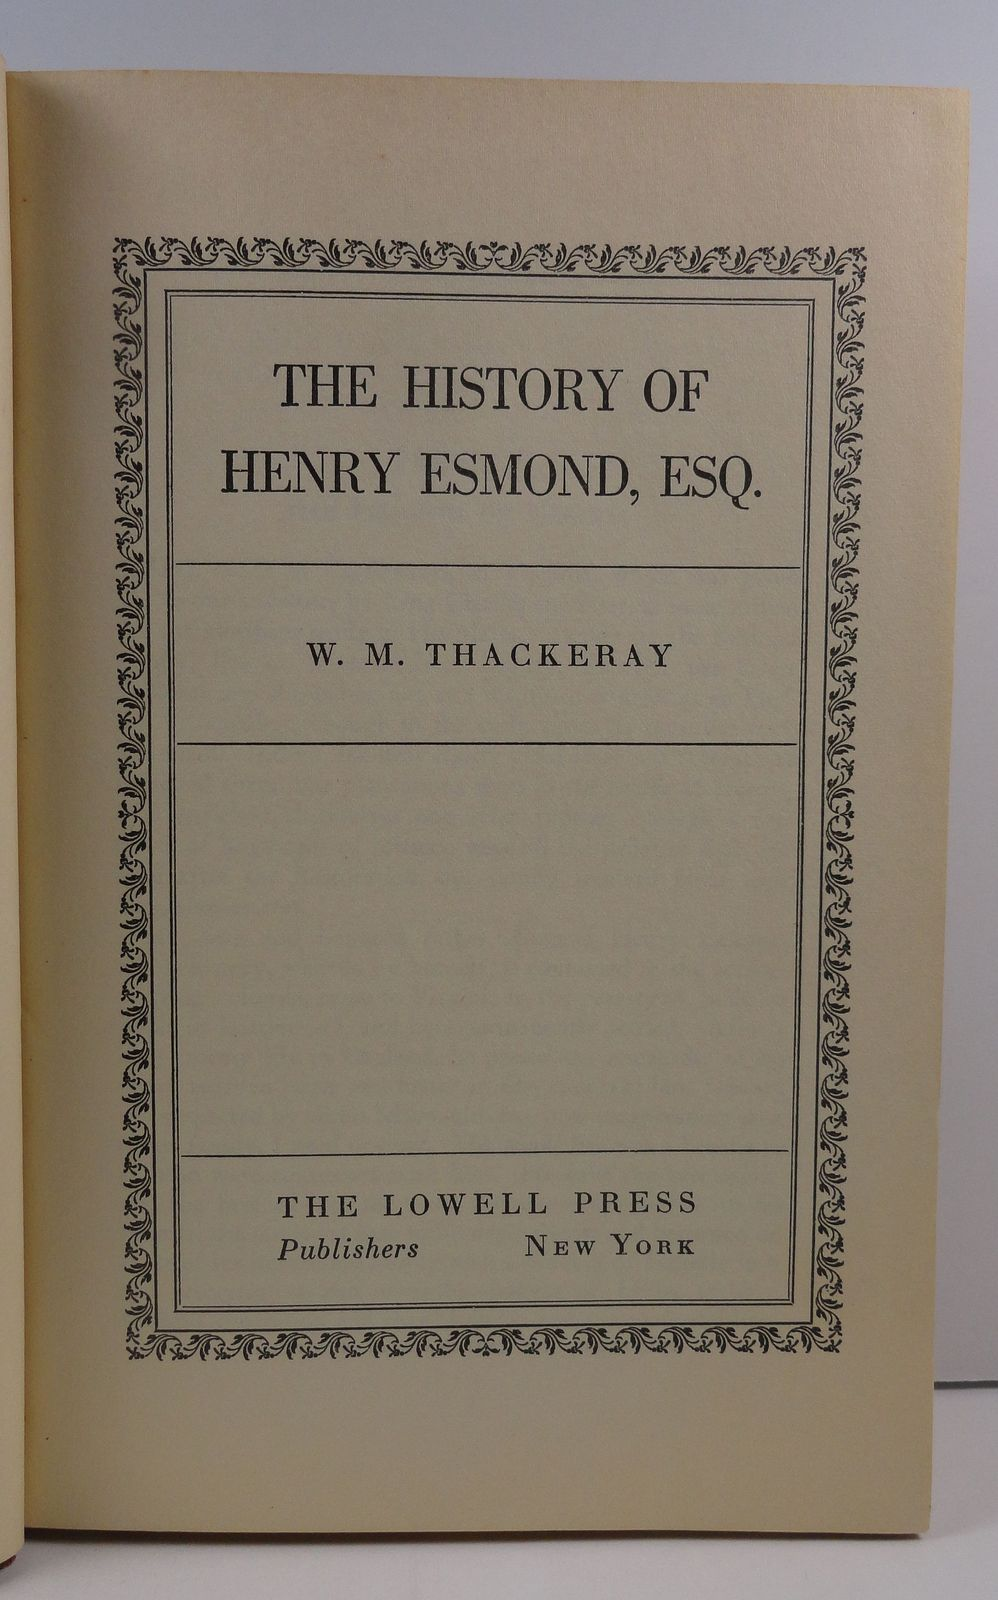 The History of Henry Esmond Esq. by W.M. Thackeray